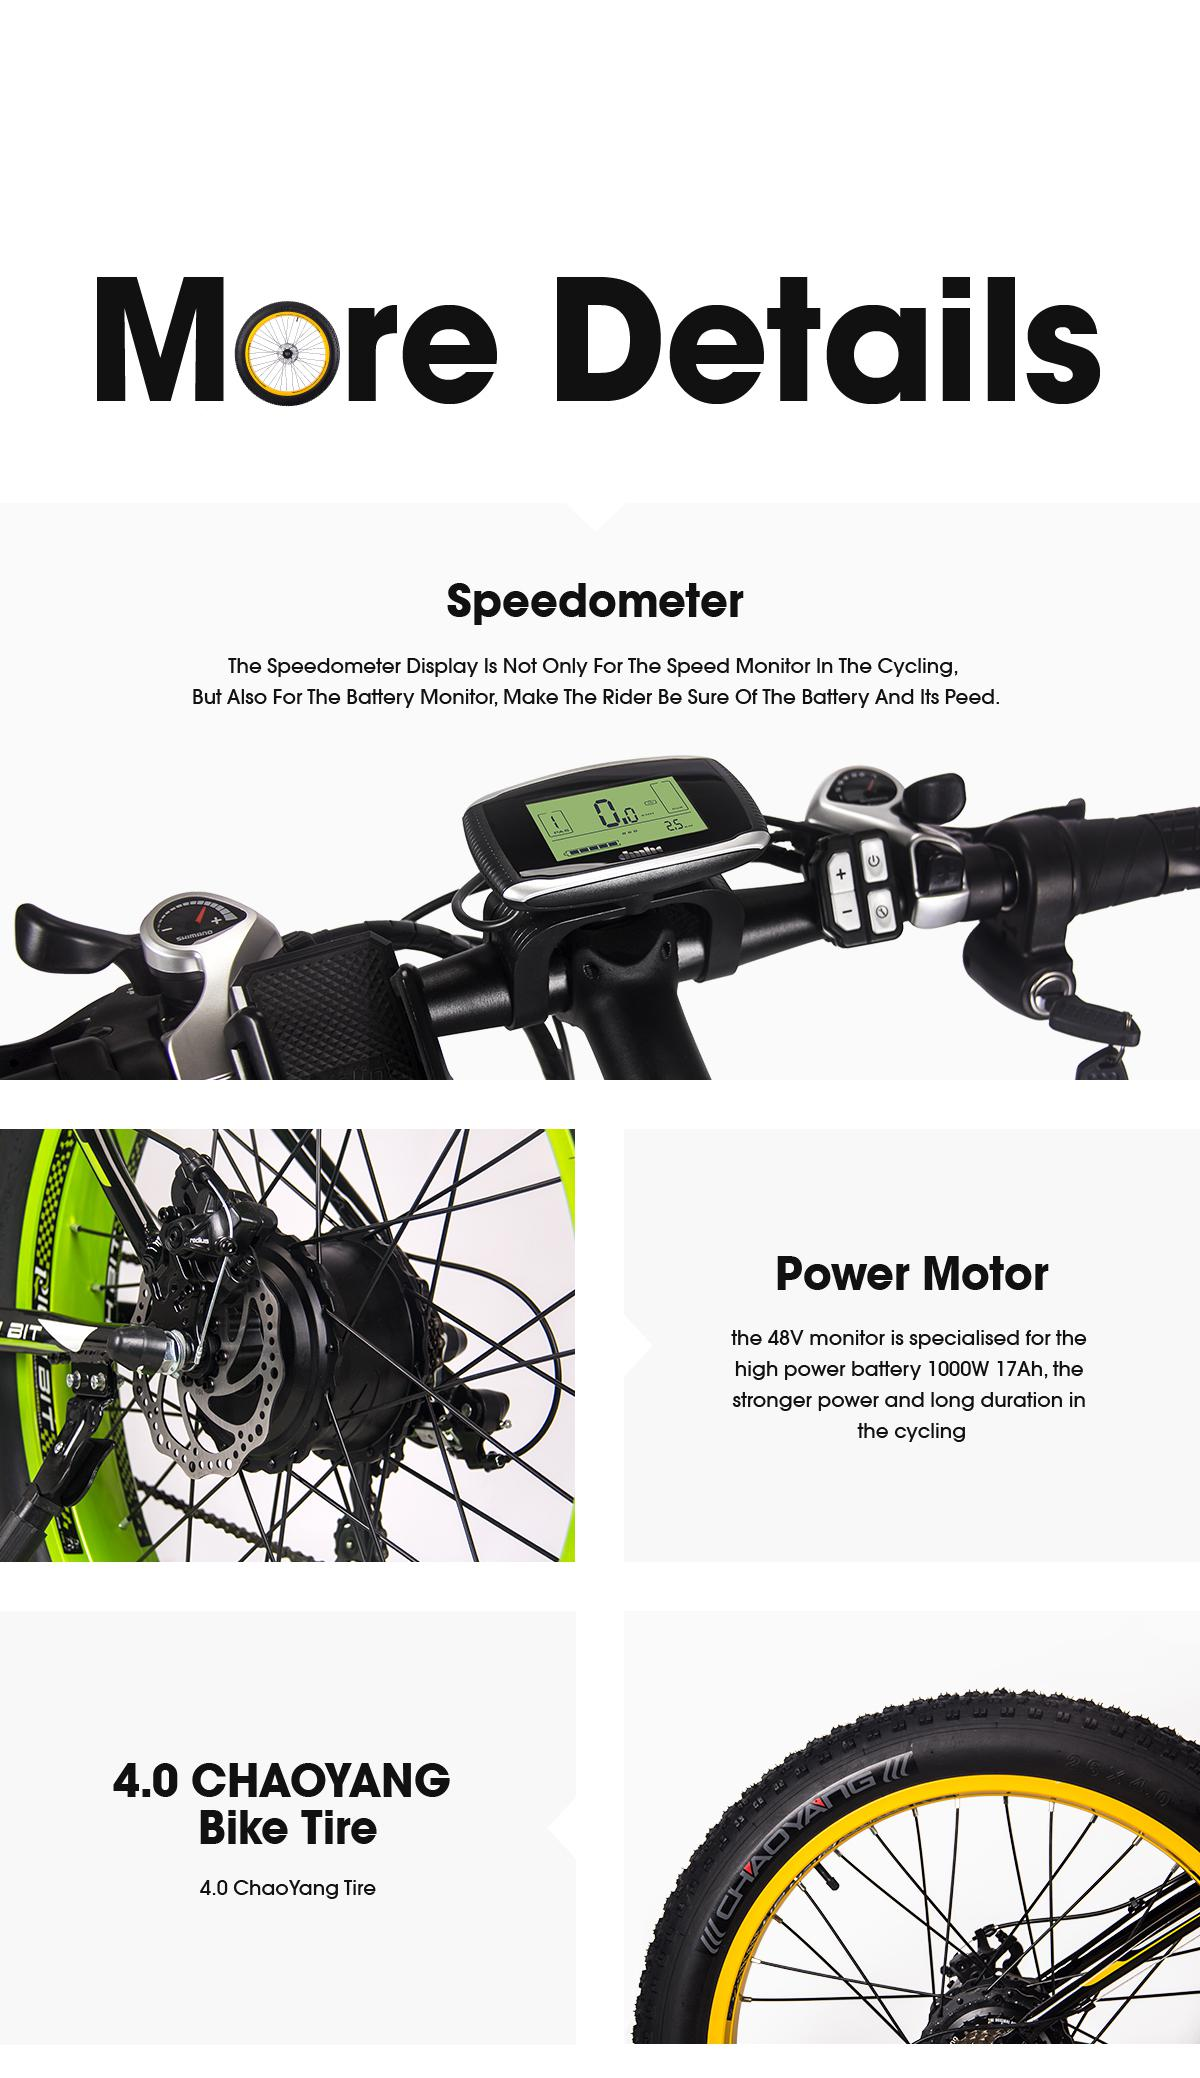 838adcbadce8 - Coupon code for RICH BIT RT-022 Ebike 48V 17Ah Li-battery 4.0 In Fat Tire Bicycle Snow Electric Bike Mountain Accelerator Throttl - White Blue Poland